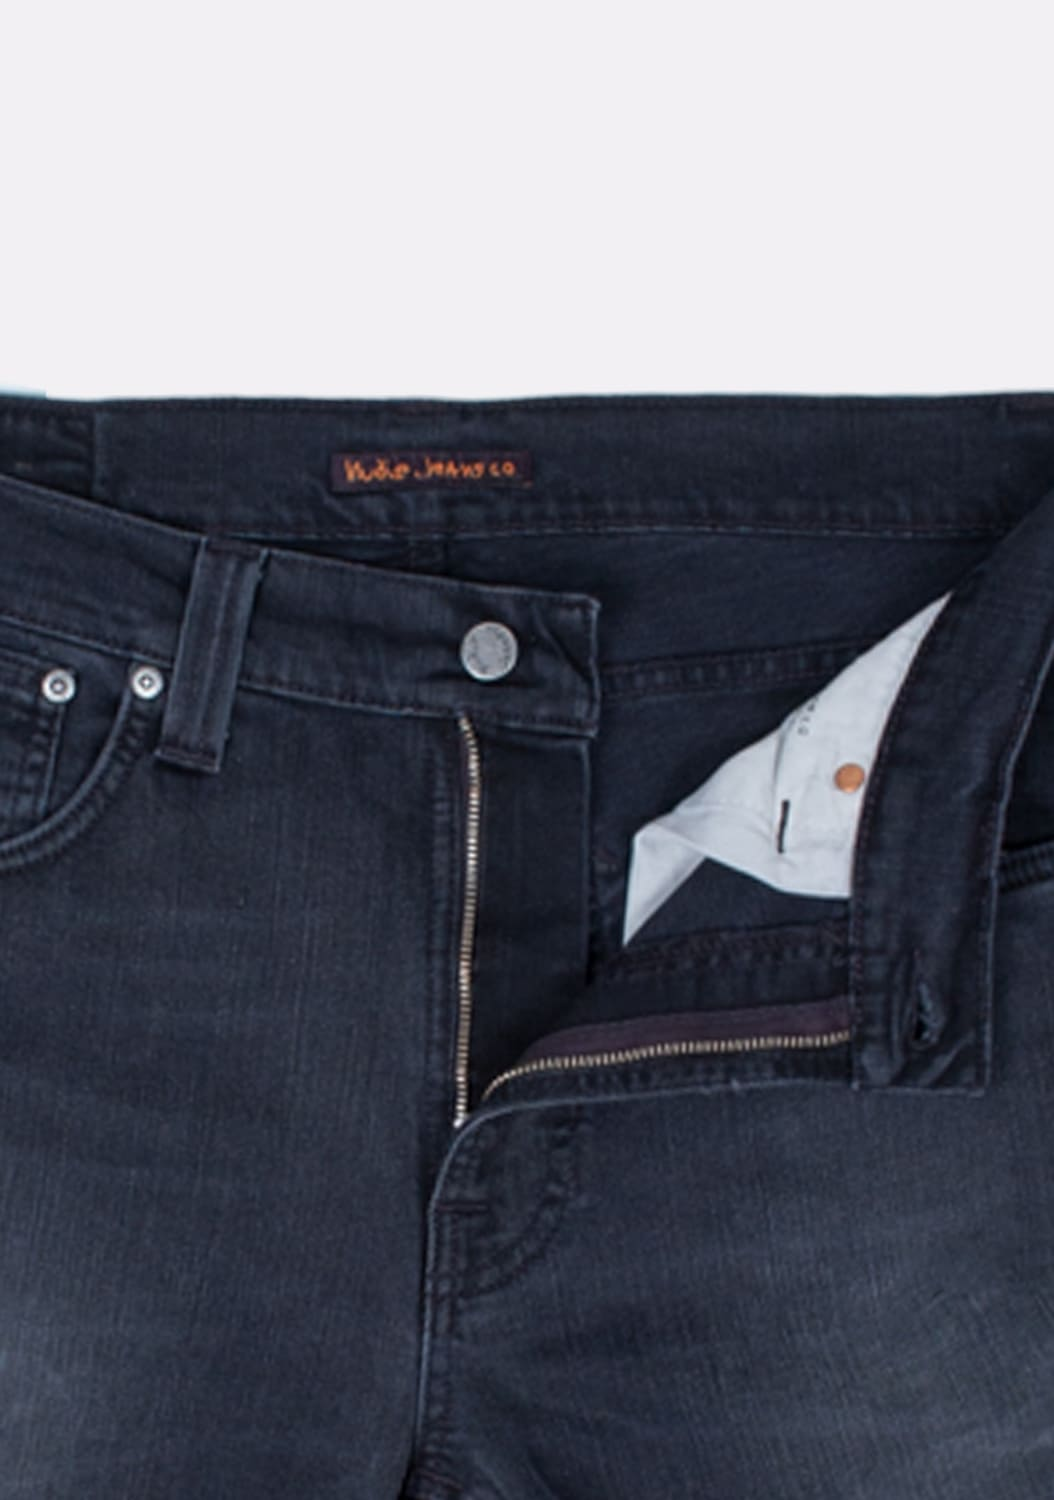 Nudie-Jeans-Lean-Dean-Black-Changes-34-34-juodi-dzinsai (4)